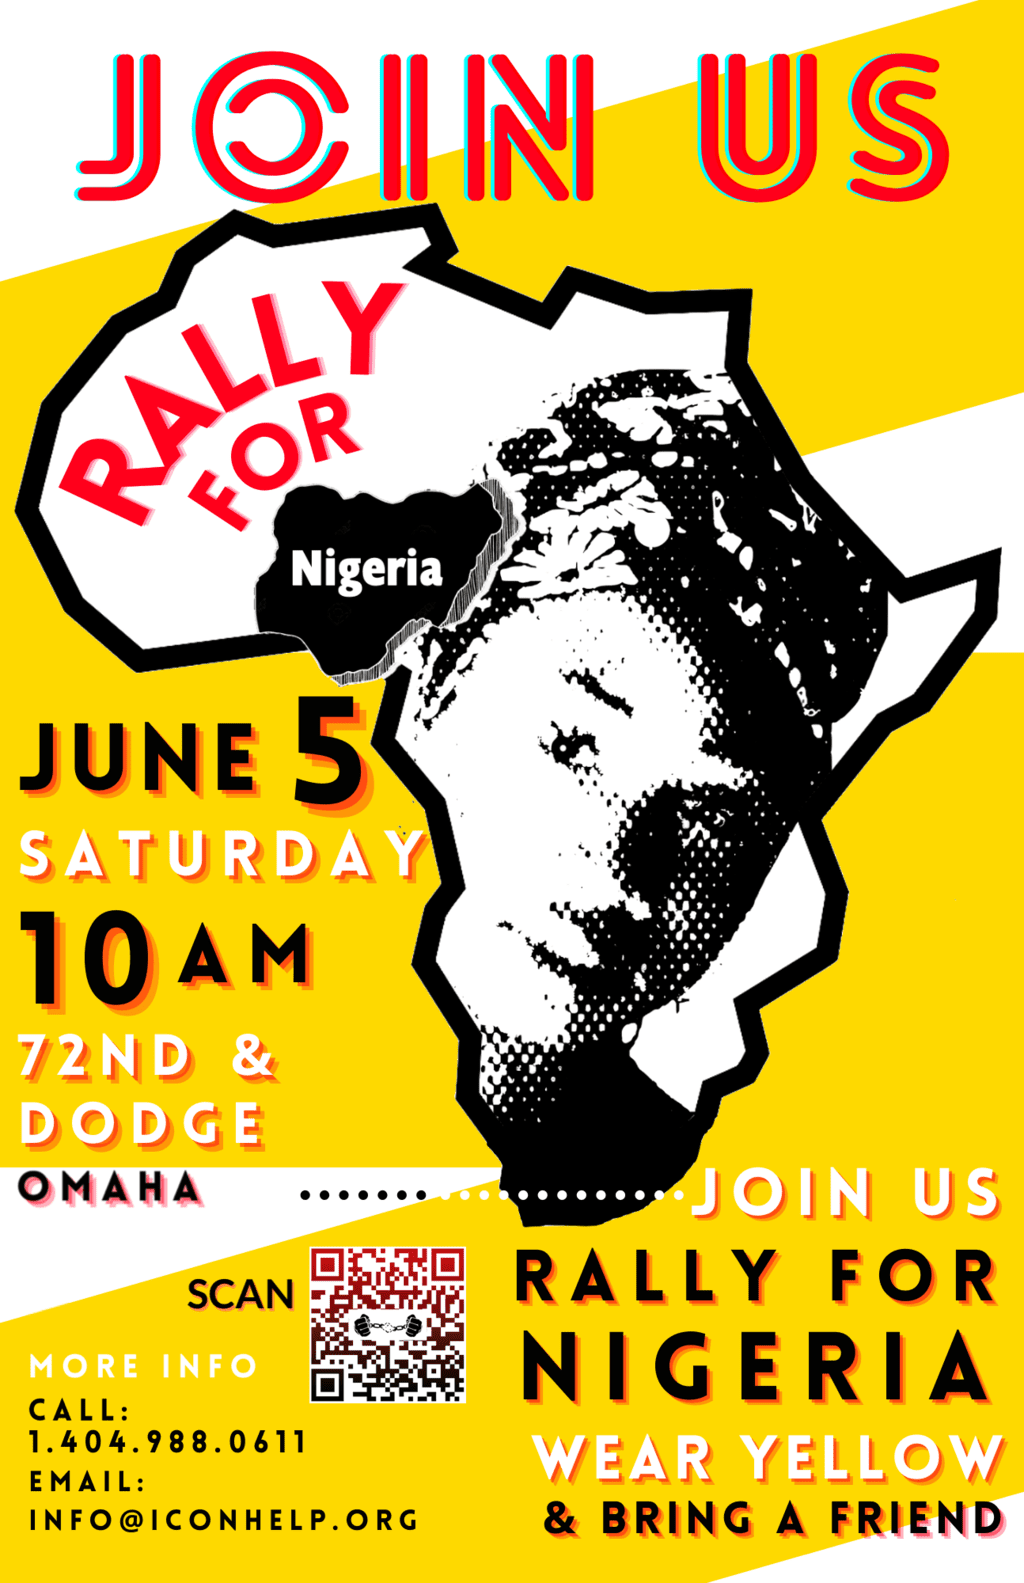 RELEASE – Demonstration in Omaha to Free the Slaves of Nigeria